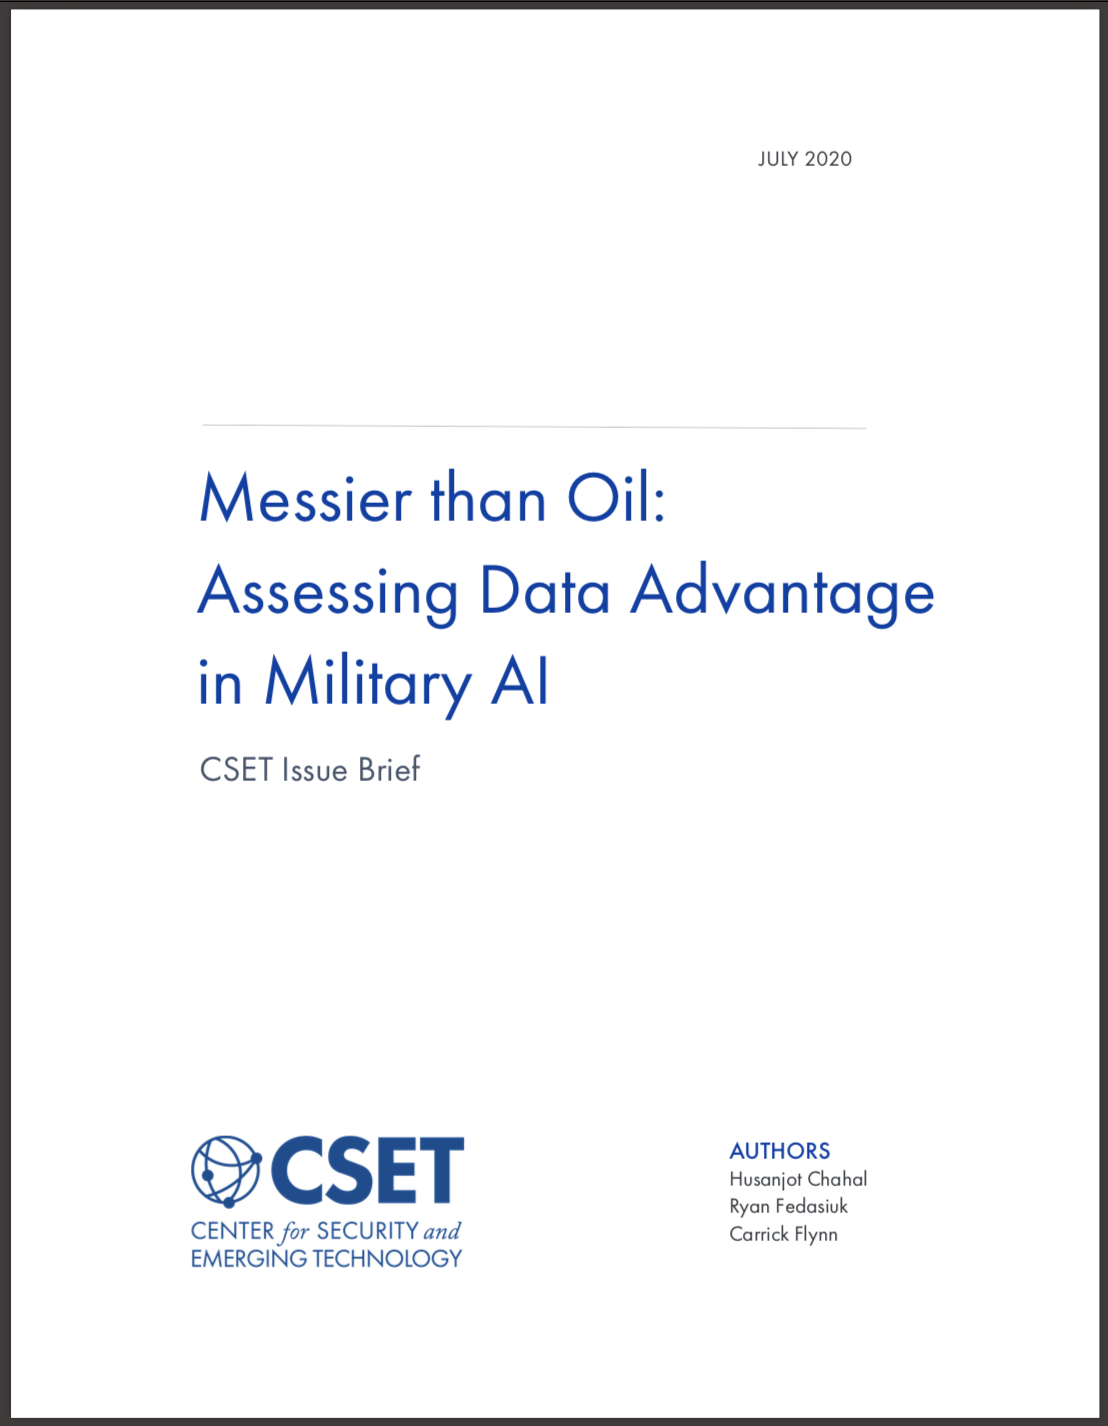 https://cset.georgetown.edu/research/messier-than-oil-assessing-data-advantage-in-military-ai/